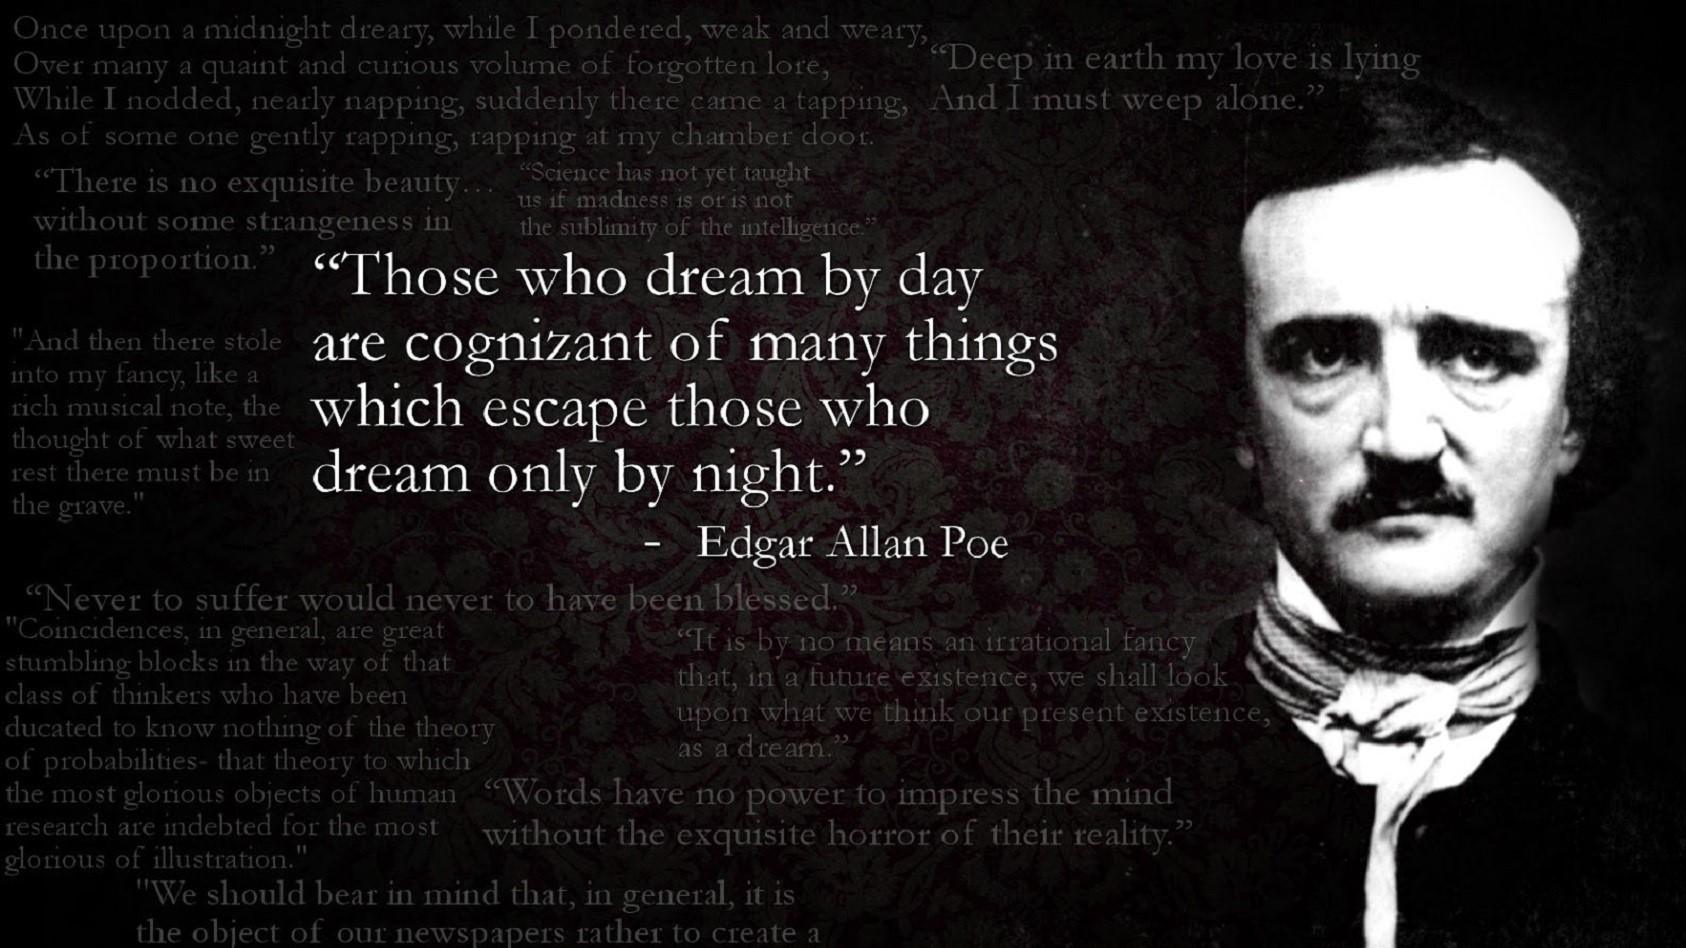 Edgar Allan Poe Stories at spillwords.com